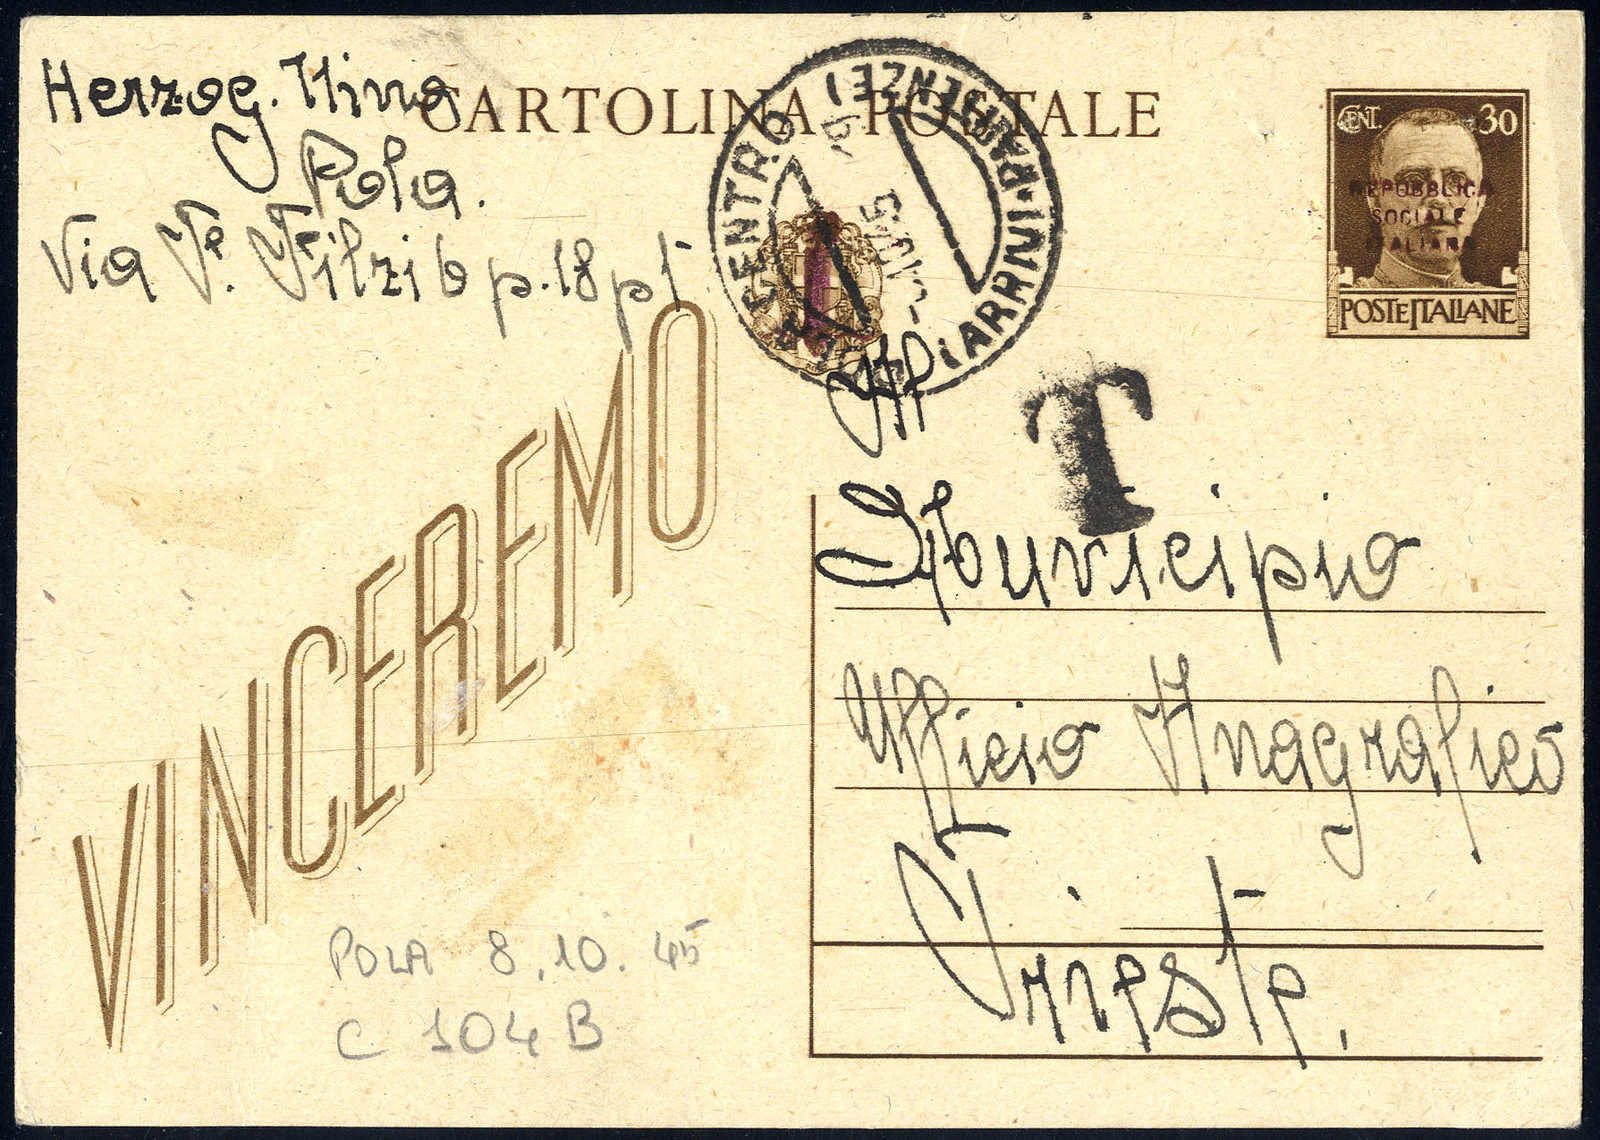 Lot 834 - europe Italy Royal Mail -  Viennafil Auktionen 63rd LIVE AUCTION